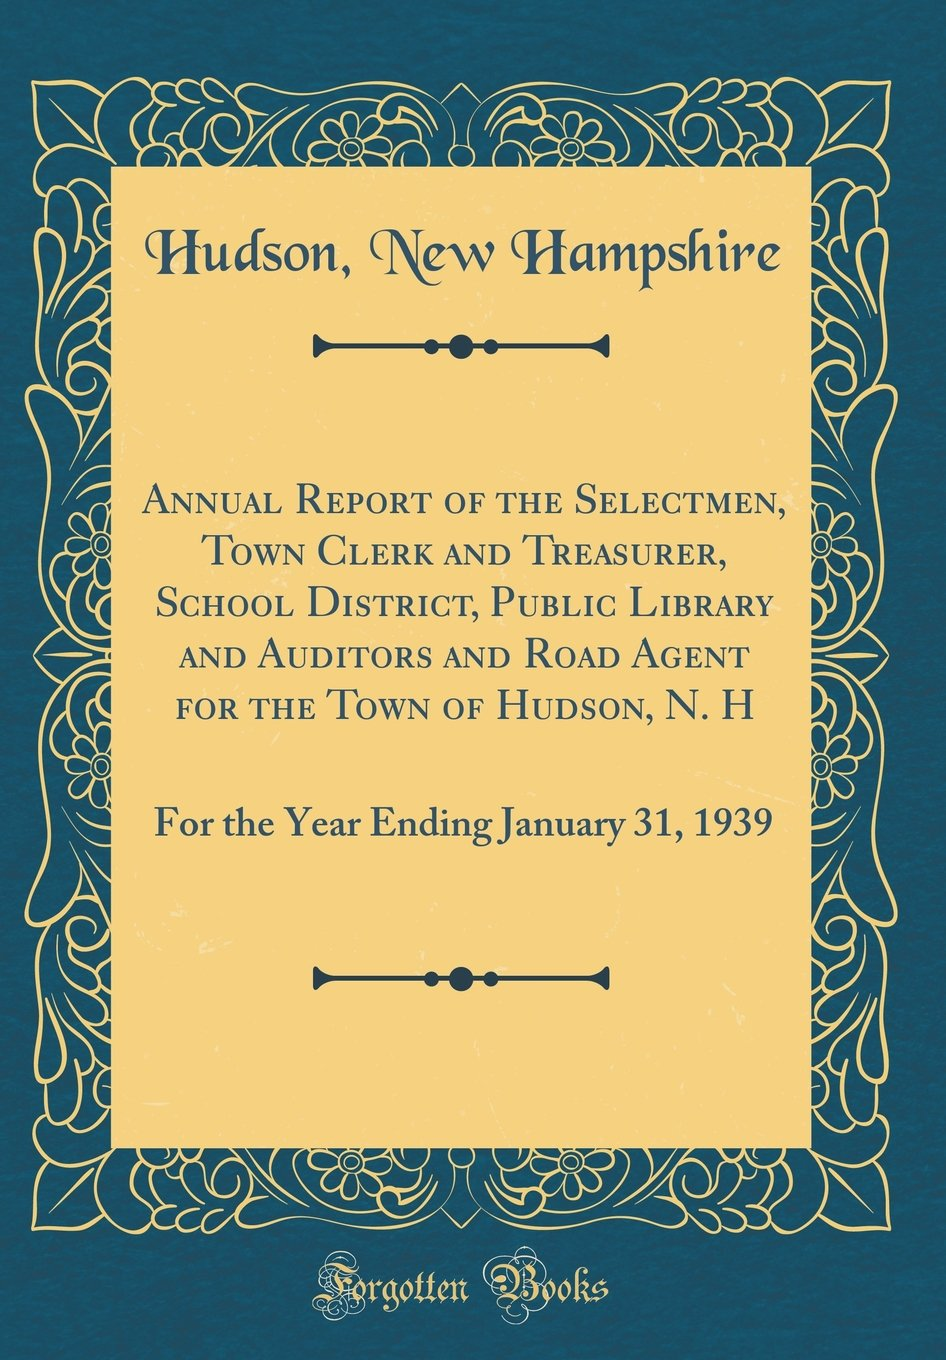 Download Annual Report of the Selectmen, Town Clerk and Treasurer, School District, Public Library and Auditors and Road Agent for the Town of Hudson, N. H: ... Ending January 31, 1939 (Classic Reprint) PDF